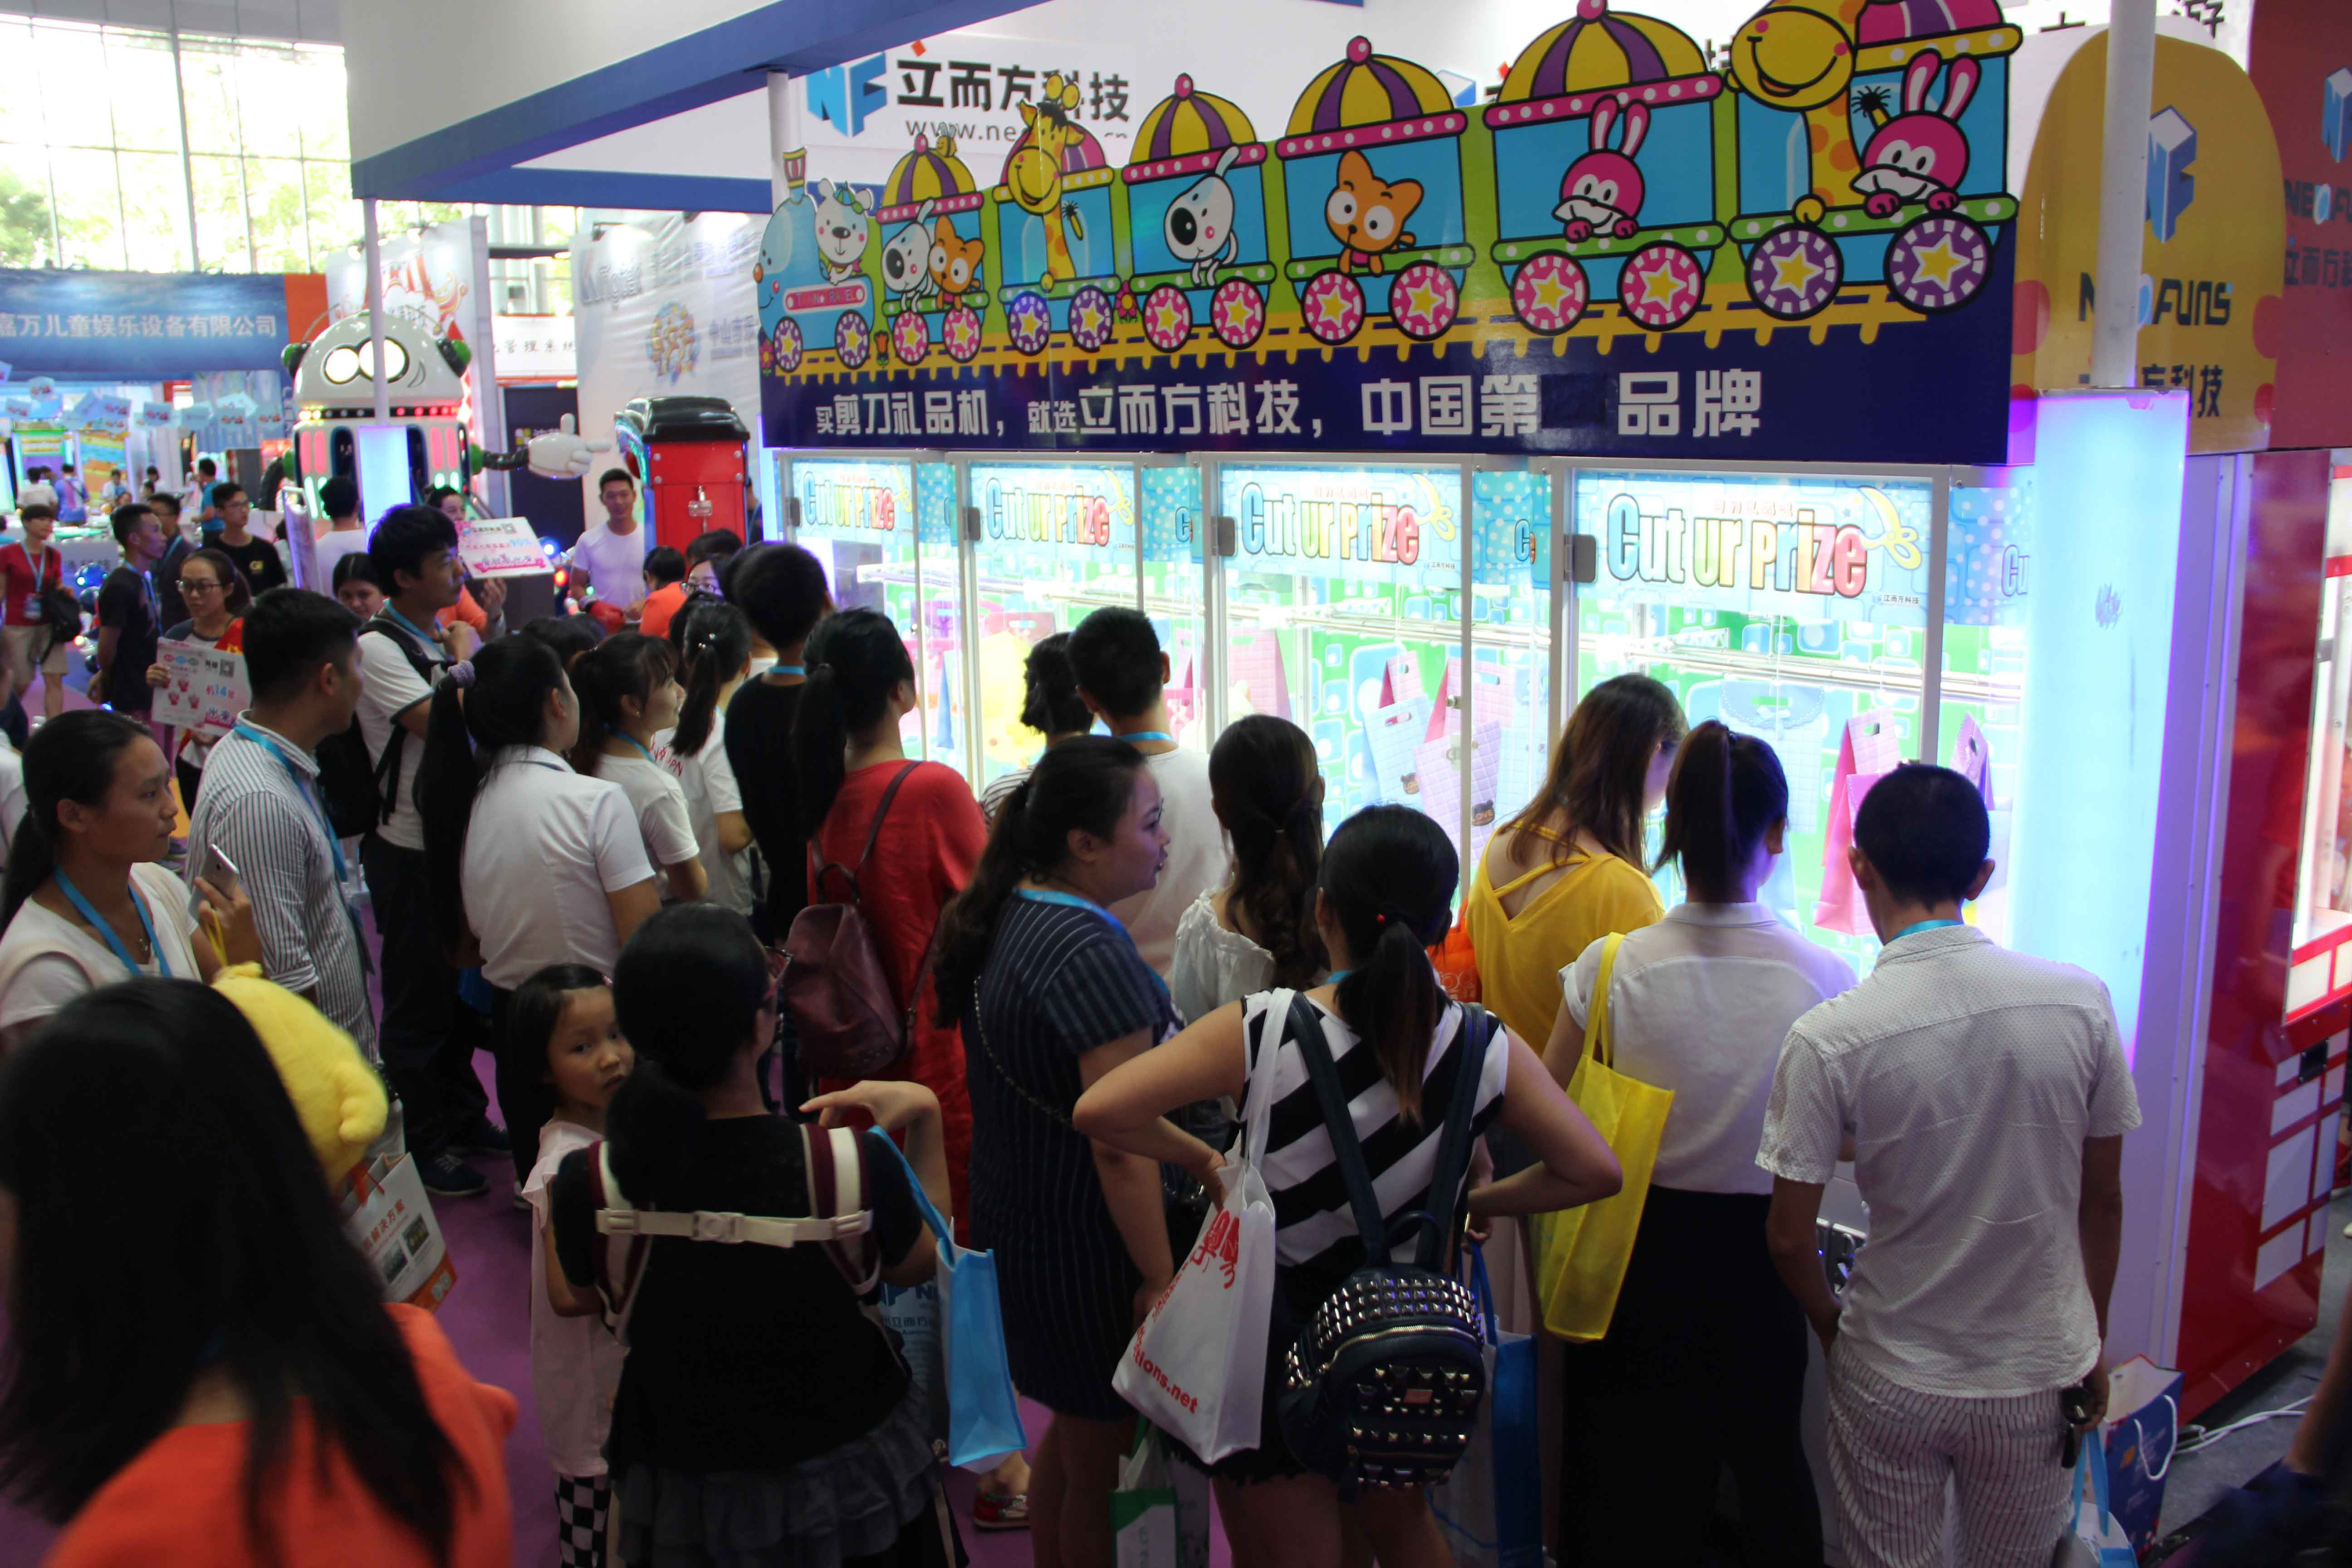 How to operate the claw machine?